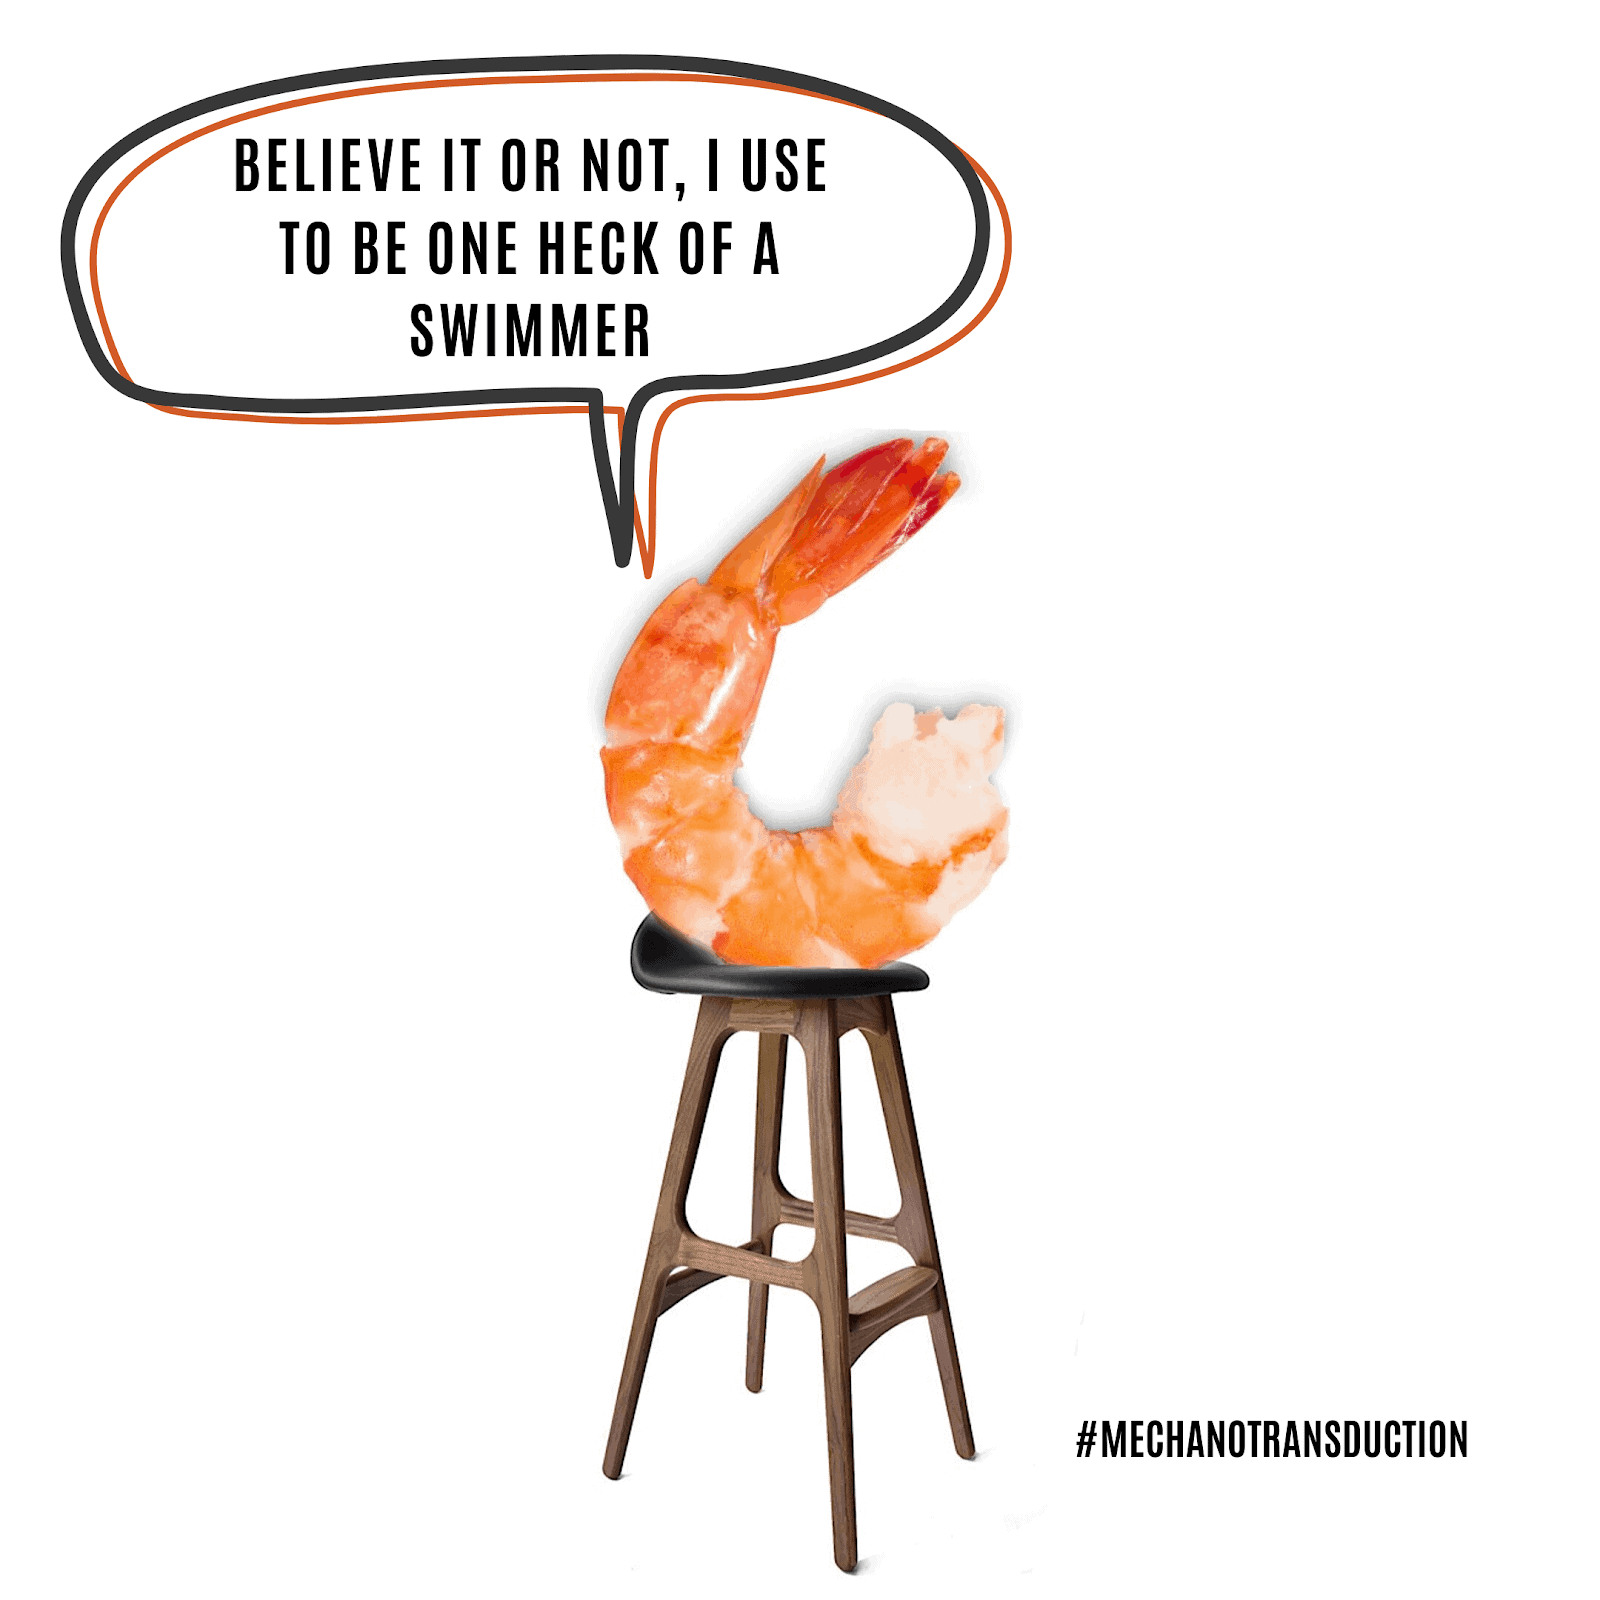 Shrimp on a stool